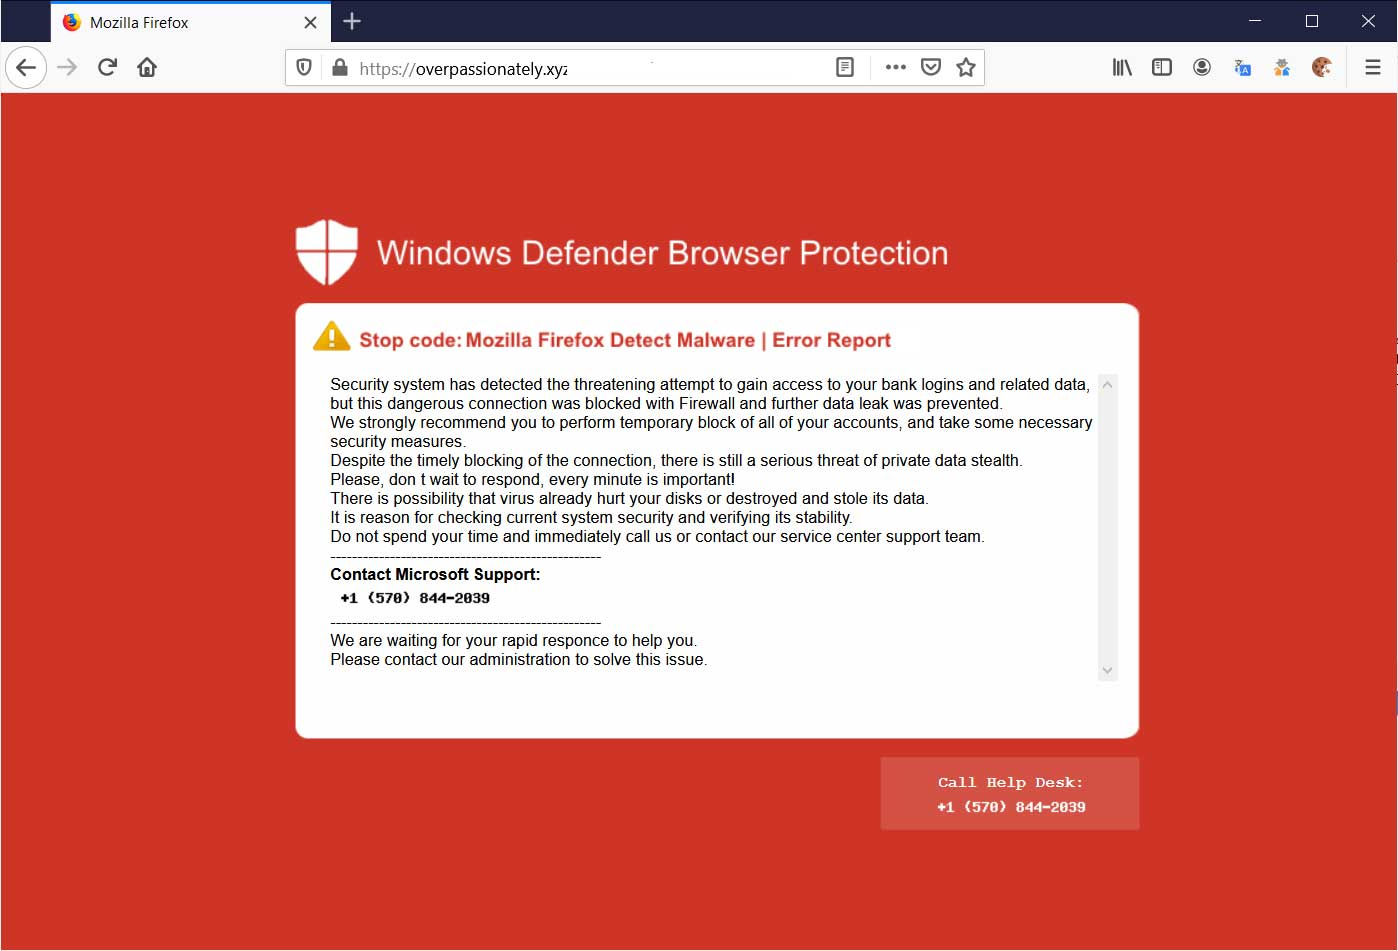 Windows Defender Browser Protection Tech Support Scam